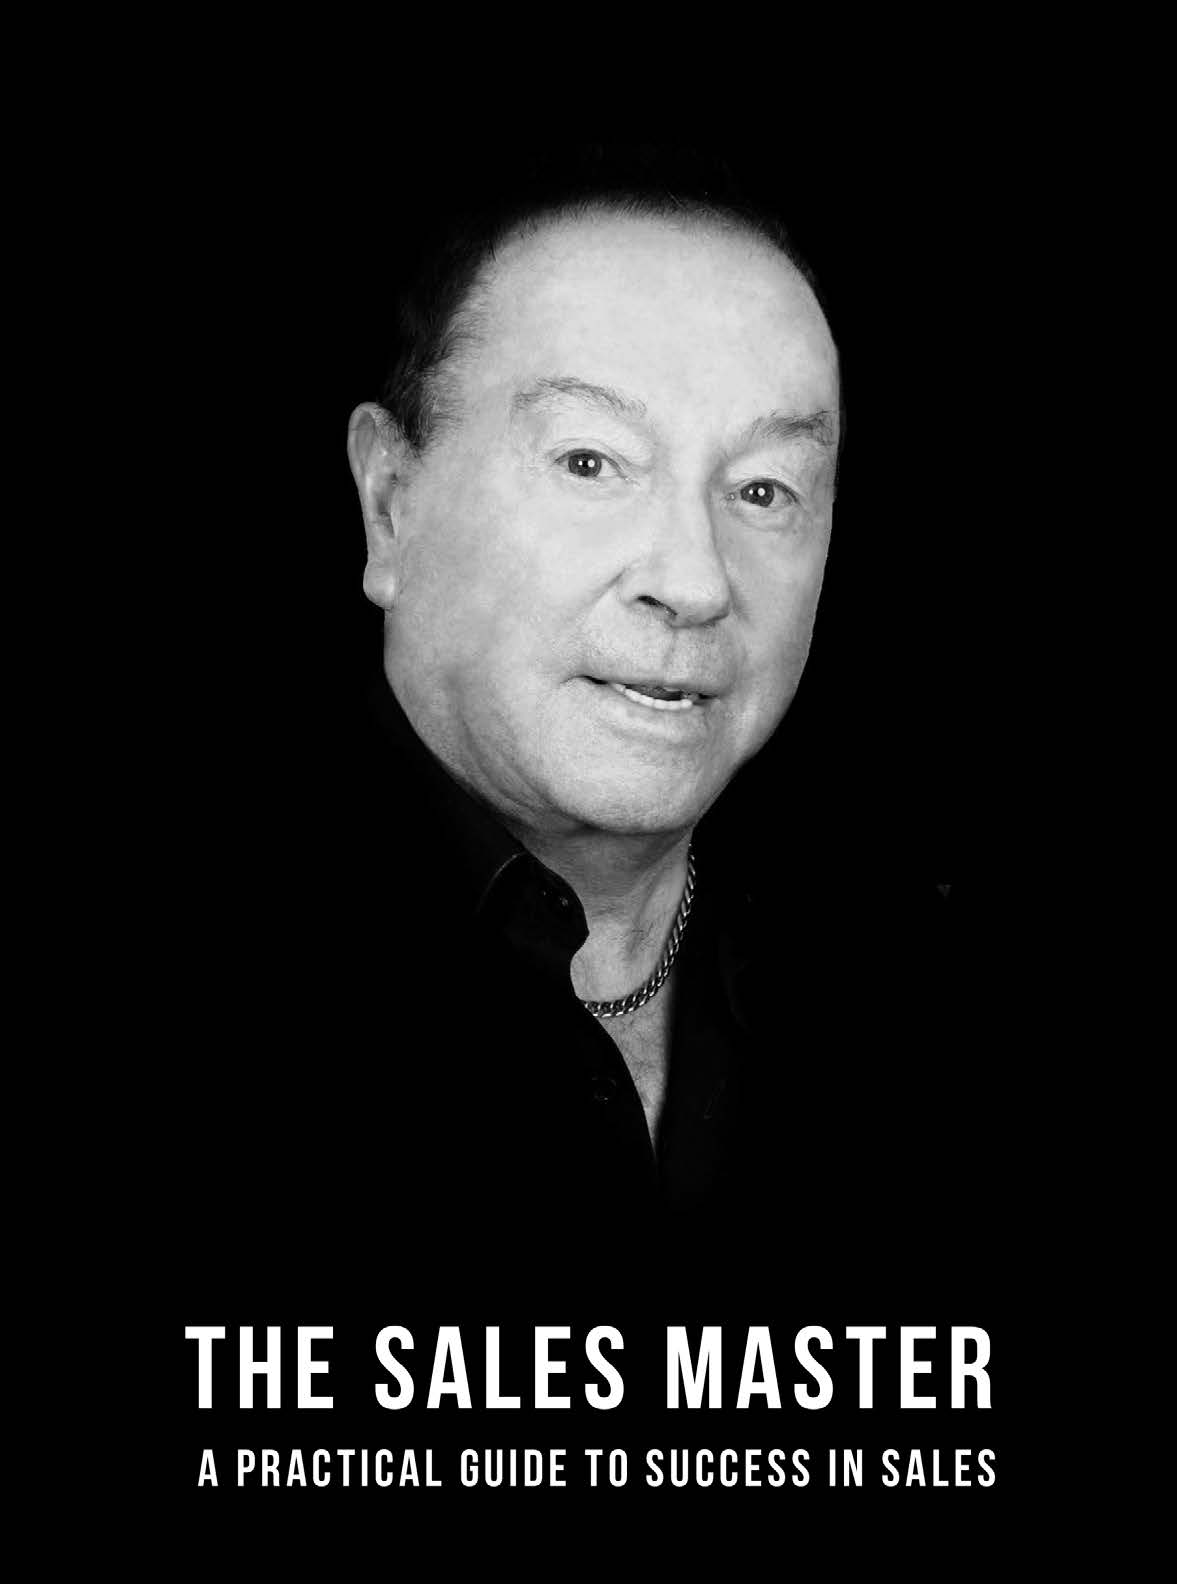 The Sales Master - A Practical Guide to Sucess in Sales, Frank Woodward with commentary by Lee Woodward